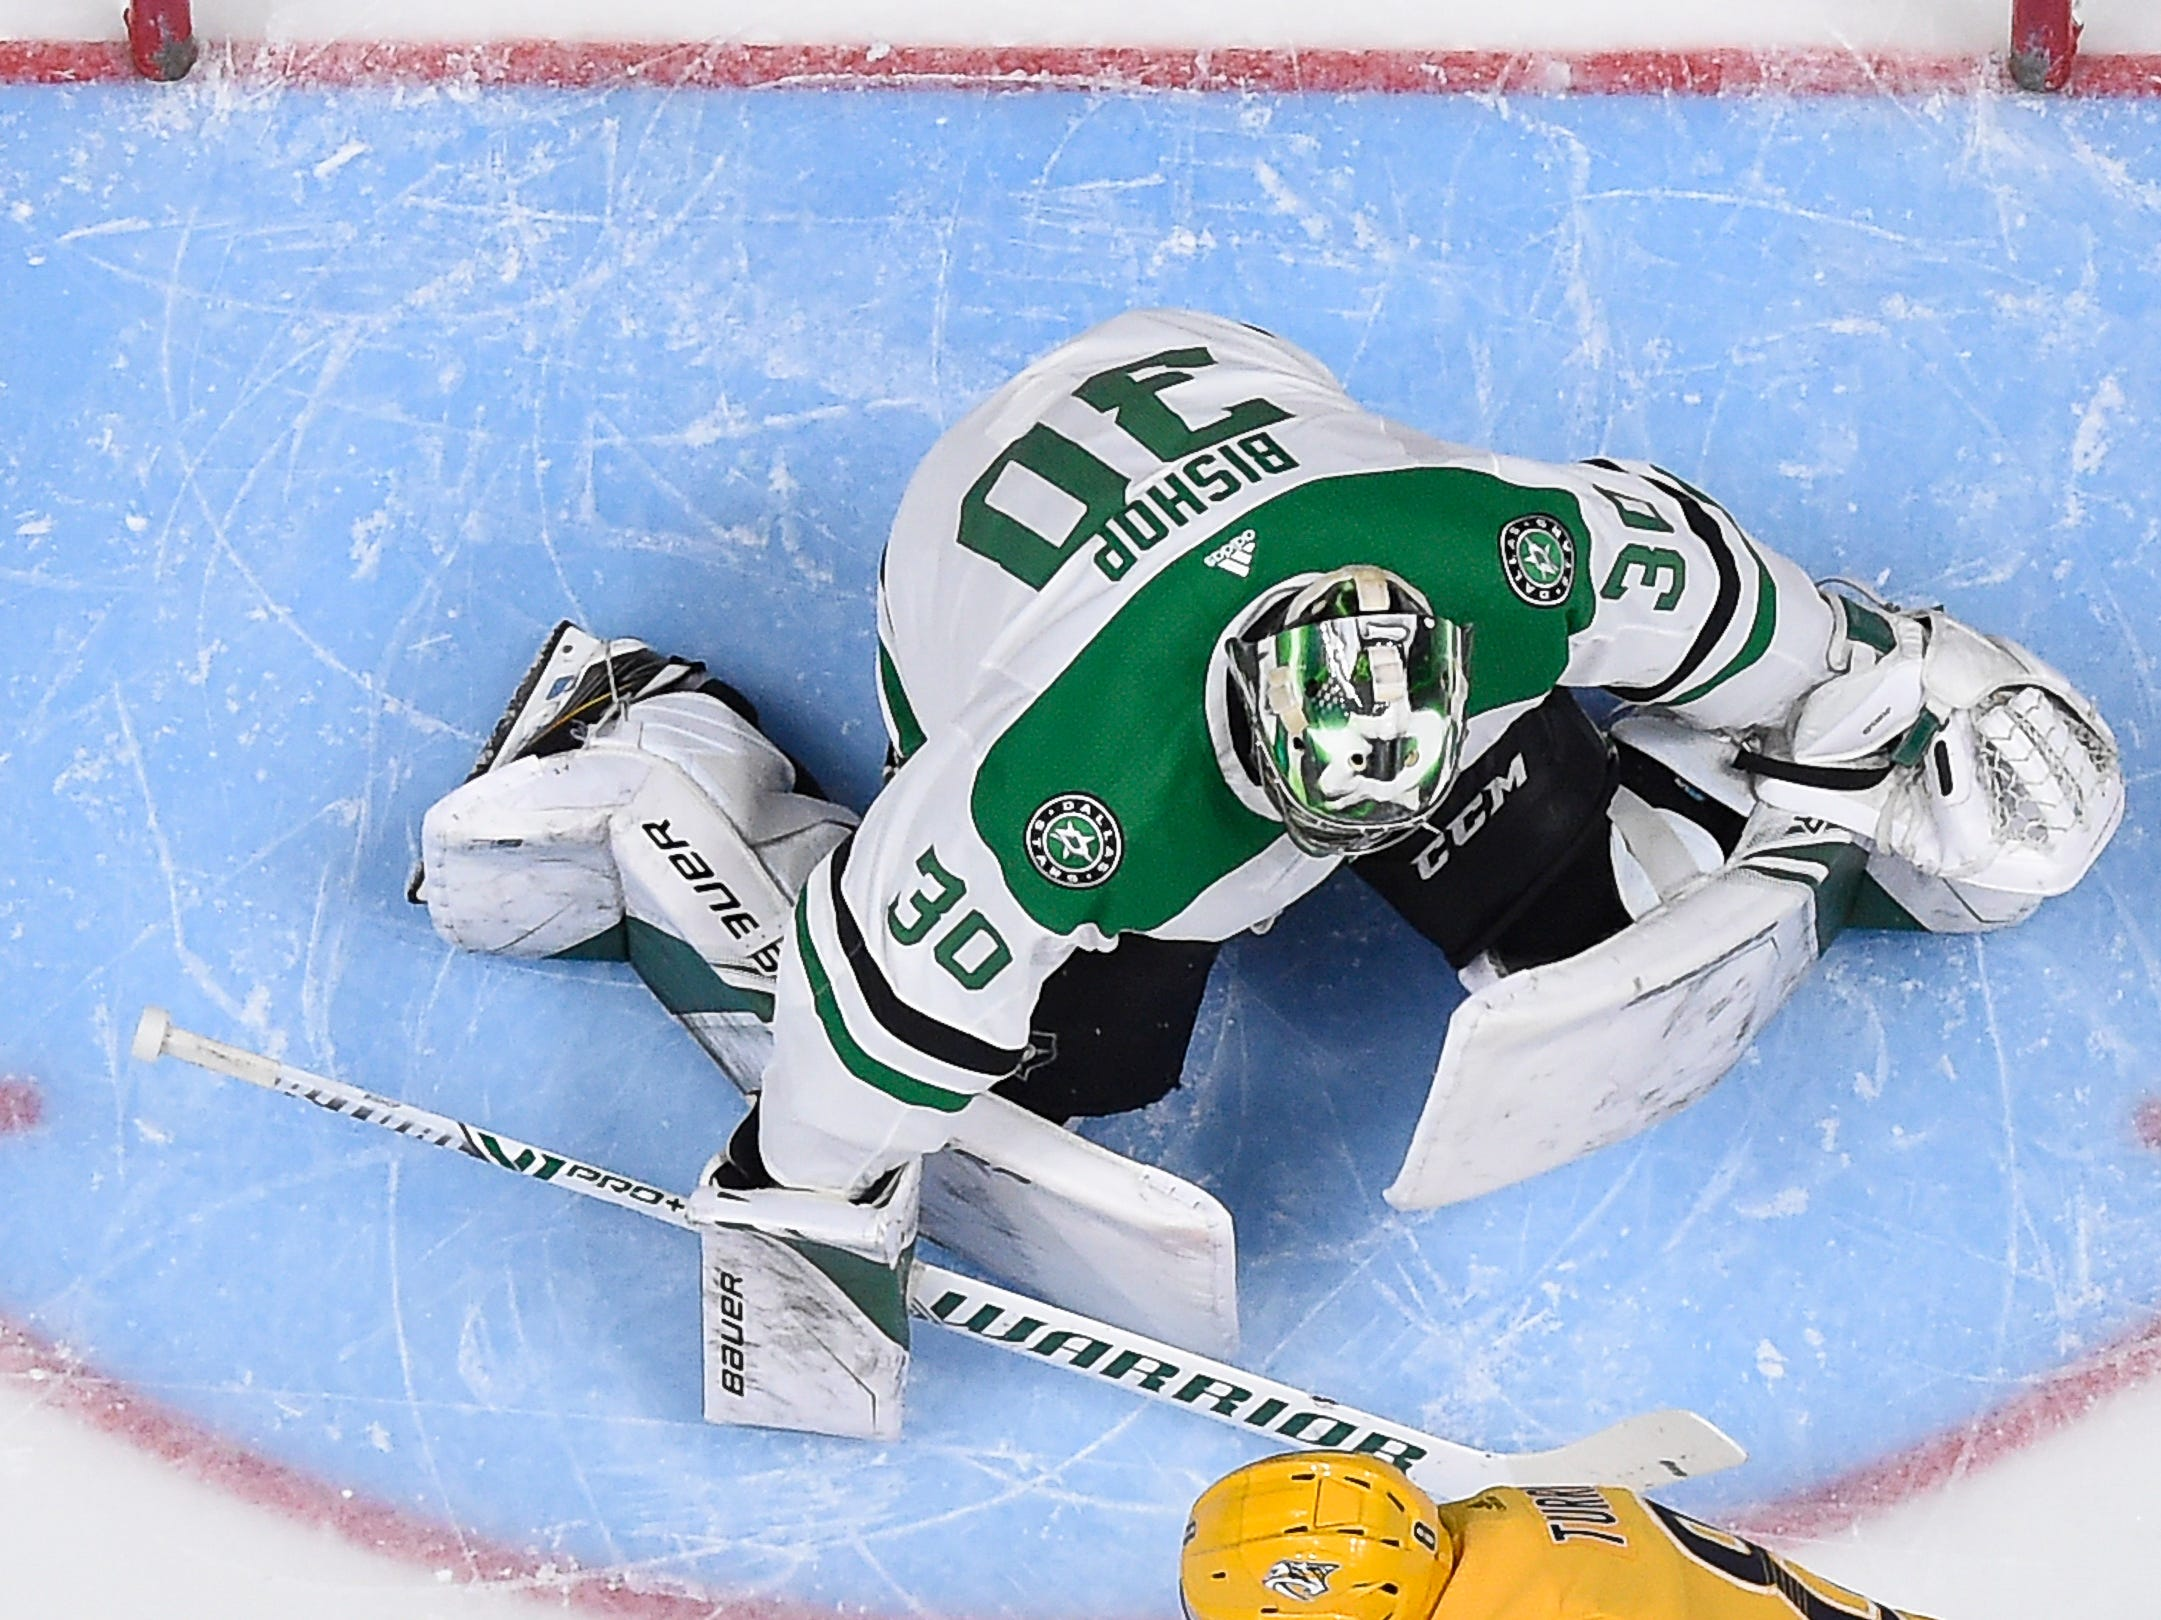 Nashville Predators center Kyle Turris (8) tries to shoot past Dallas Stars goaltender Ben Bishop (30) during the first period of the divisional semifinal game at Bridgestone Arena Wednesday, April 10, 2019 in Nashville, Tenn.